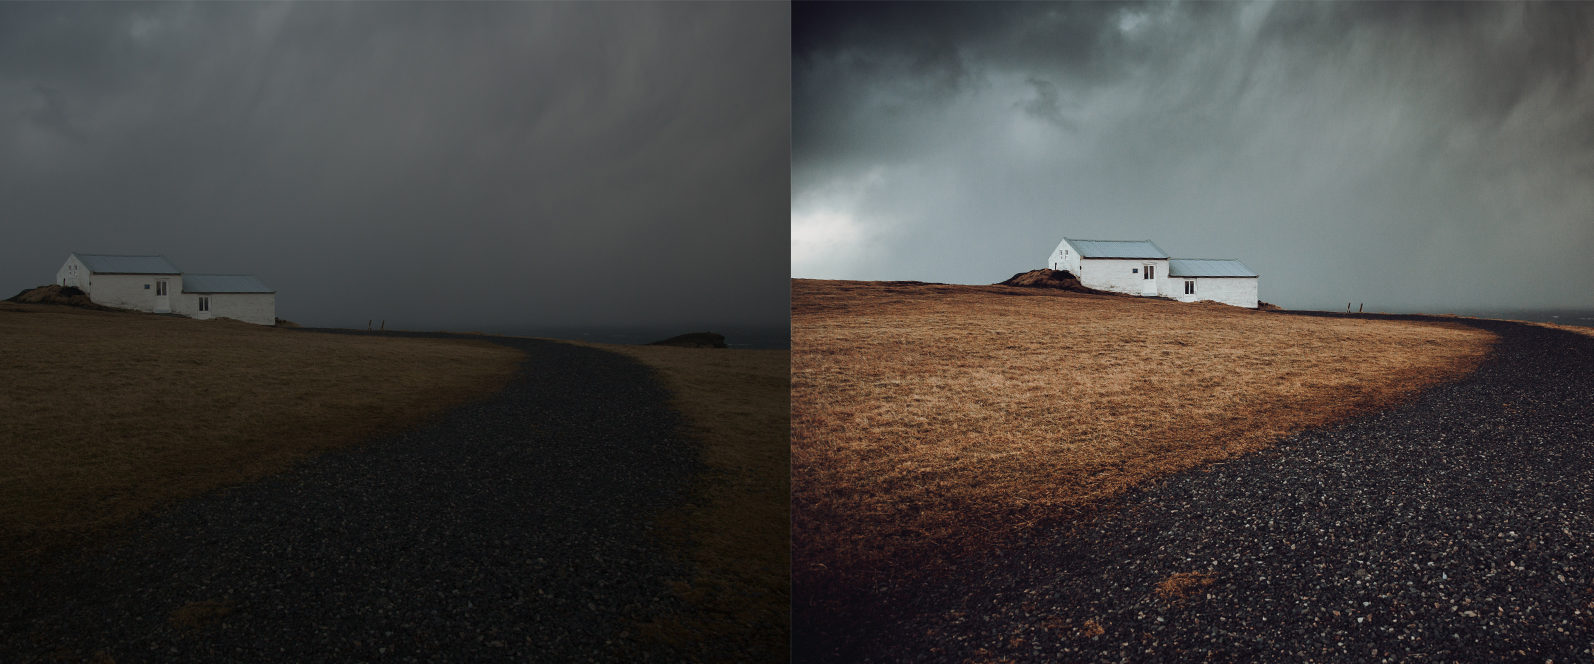 BUNDLE /// 03_Travel Collection // 97 x Desktop and Mobile Presets - Iceland Preview 23 1 -